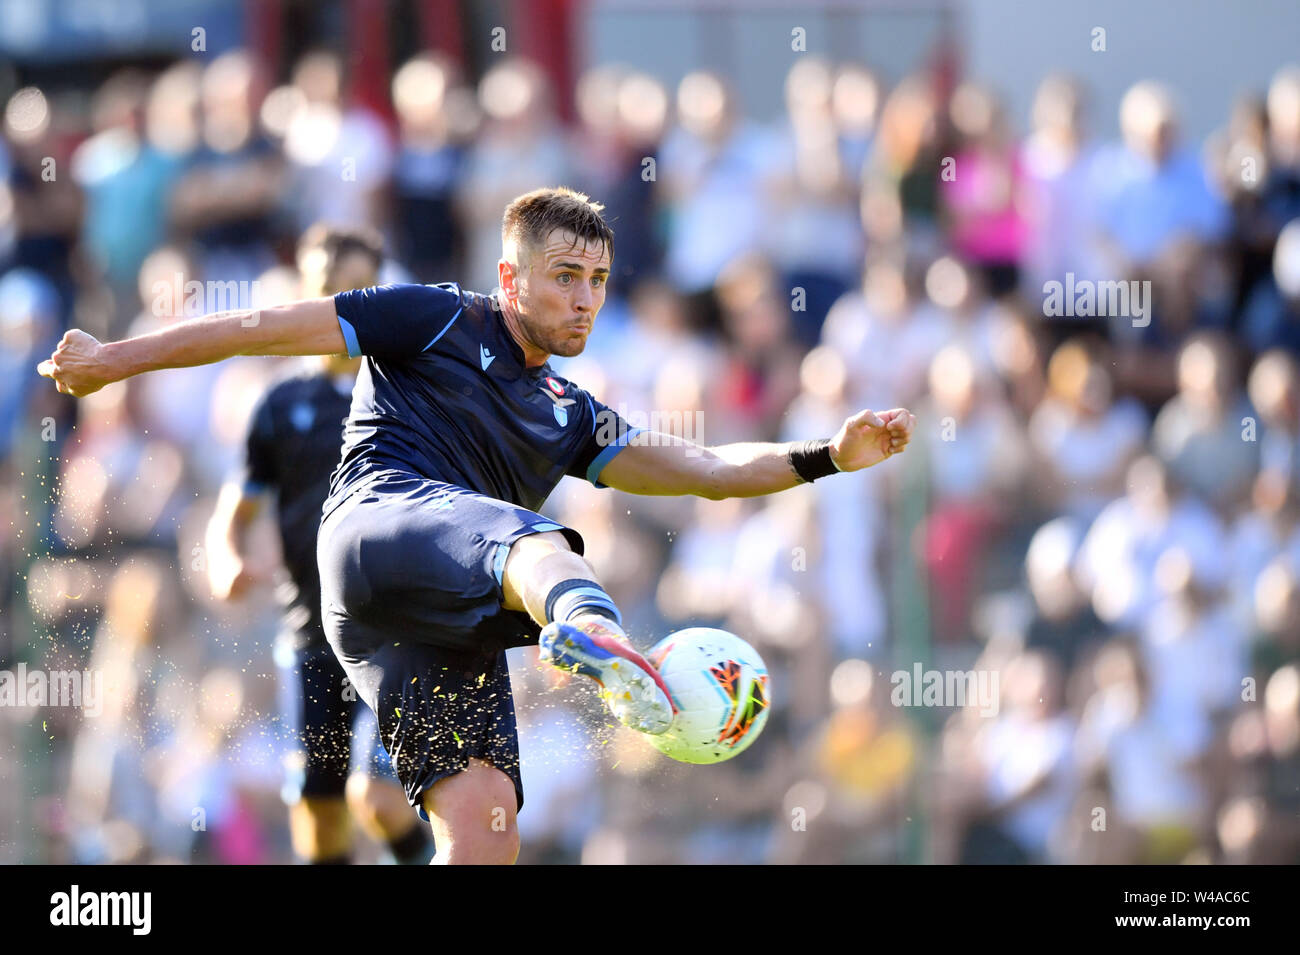 "Auronzo Di Cadore, Italia. 21st July, 2019. Foto Massimo Paolone/LaPresse21 luglio 2019 Auronzo di Cadore (Bl), Italia sport calcio Lazio vs Triestina - Amichevole Pre Campionato di calcio Serie A 2019/2020 - stadio ""Rodolfo Zandegiacomo"" Nella foto: Gil Patric (S.S. Lazio) in azione Photo Massimo Paolone/LaPresse July 21, 2019 Auronzo di Cadore (Bl), Italy sport soccer Lazio vs Triestina - Friendly match Pre Italian Football Championship League A TIM 2019/2020 - ""Rodolfo Zandegiacomo"" stadium. In the pic: Gil Patric (S.S. Lazio) in action Credit: LaPresse/Alamy Live News - Stock Image"